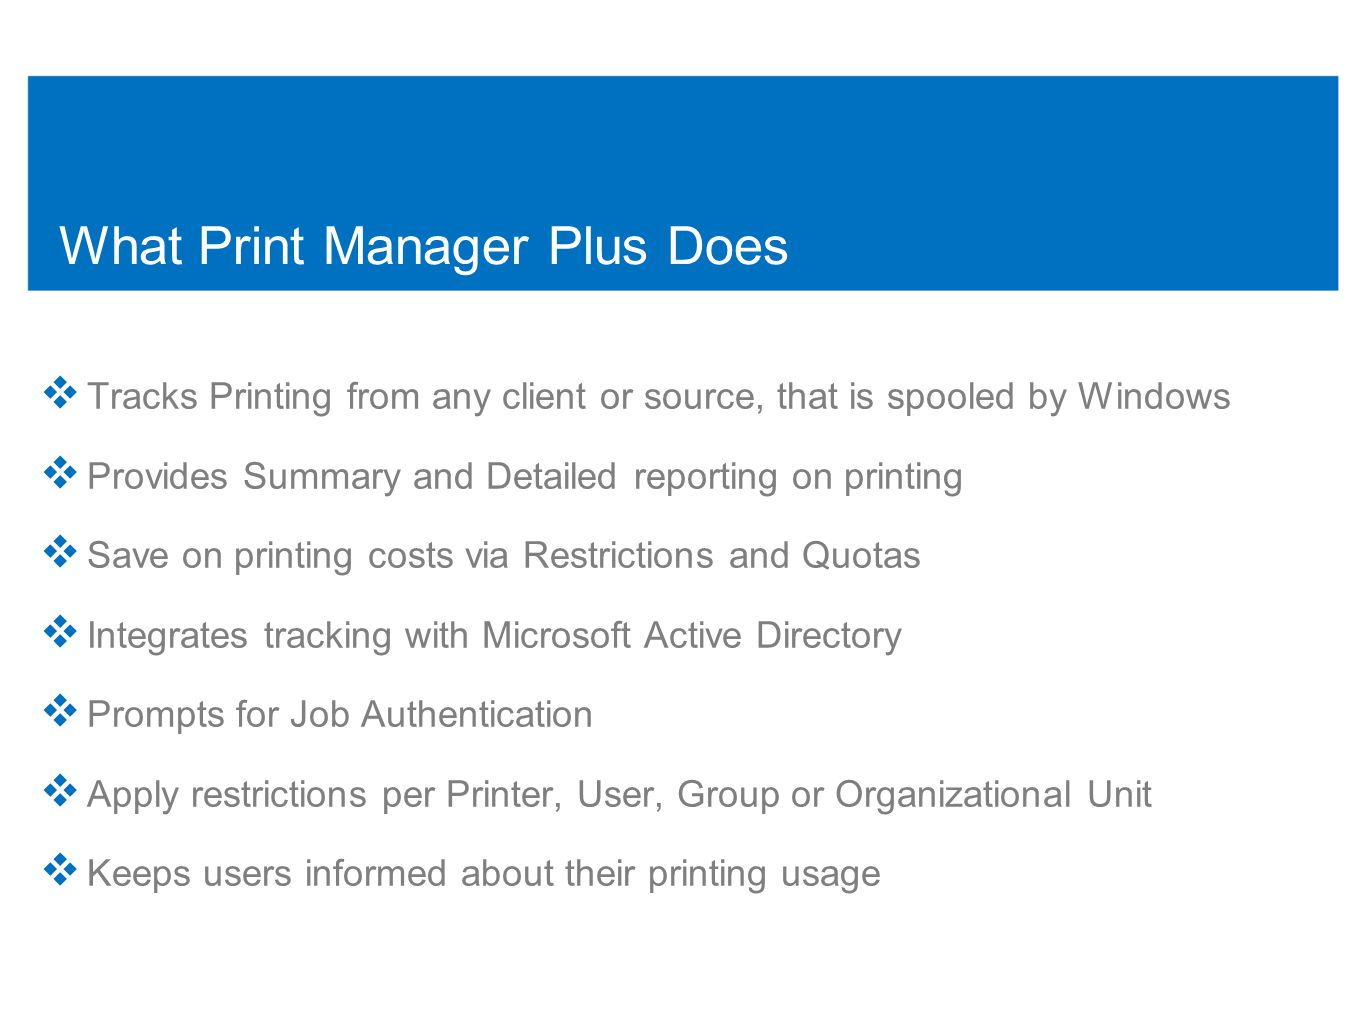 Print Manager Plus – EUIT / Authentication Module Standard Install Options:  Installed using PMP_EUIT.MSI or PMP_AuthenticationModule.MSI  Requires Local Administrative Rights to Properly Install  Requires no connection to the Print Manager Plus Database  Listed in Add/Remove Programs as: Print Manager Plus - Client Silent Install Options  Supports standard MSI Silent Commands /qn /i Silent Install Example: msiexec /i \\server\share\pmp_euit.msi /qn  Supports standard MSI Uninstall /x command Silent Uninstall Example: msiexec /x \\server\share\pmp_euit.msi /qn  Supports Group Policy department and is compatible with most Third Party Push Install programs.